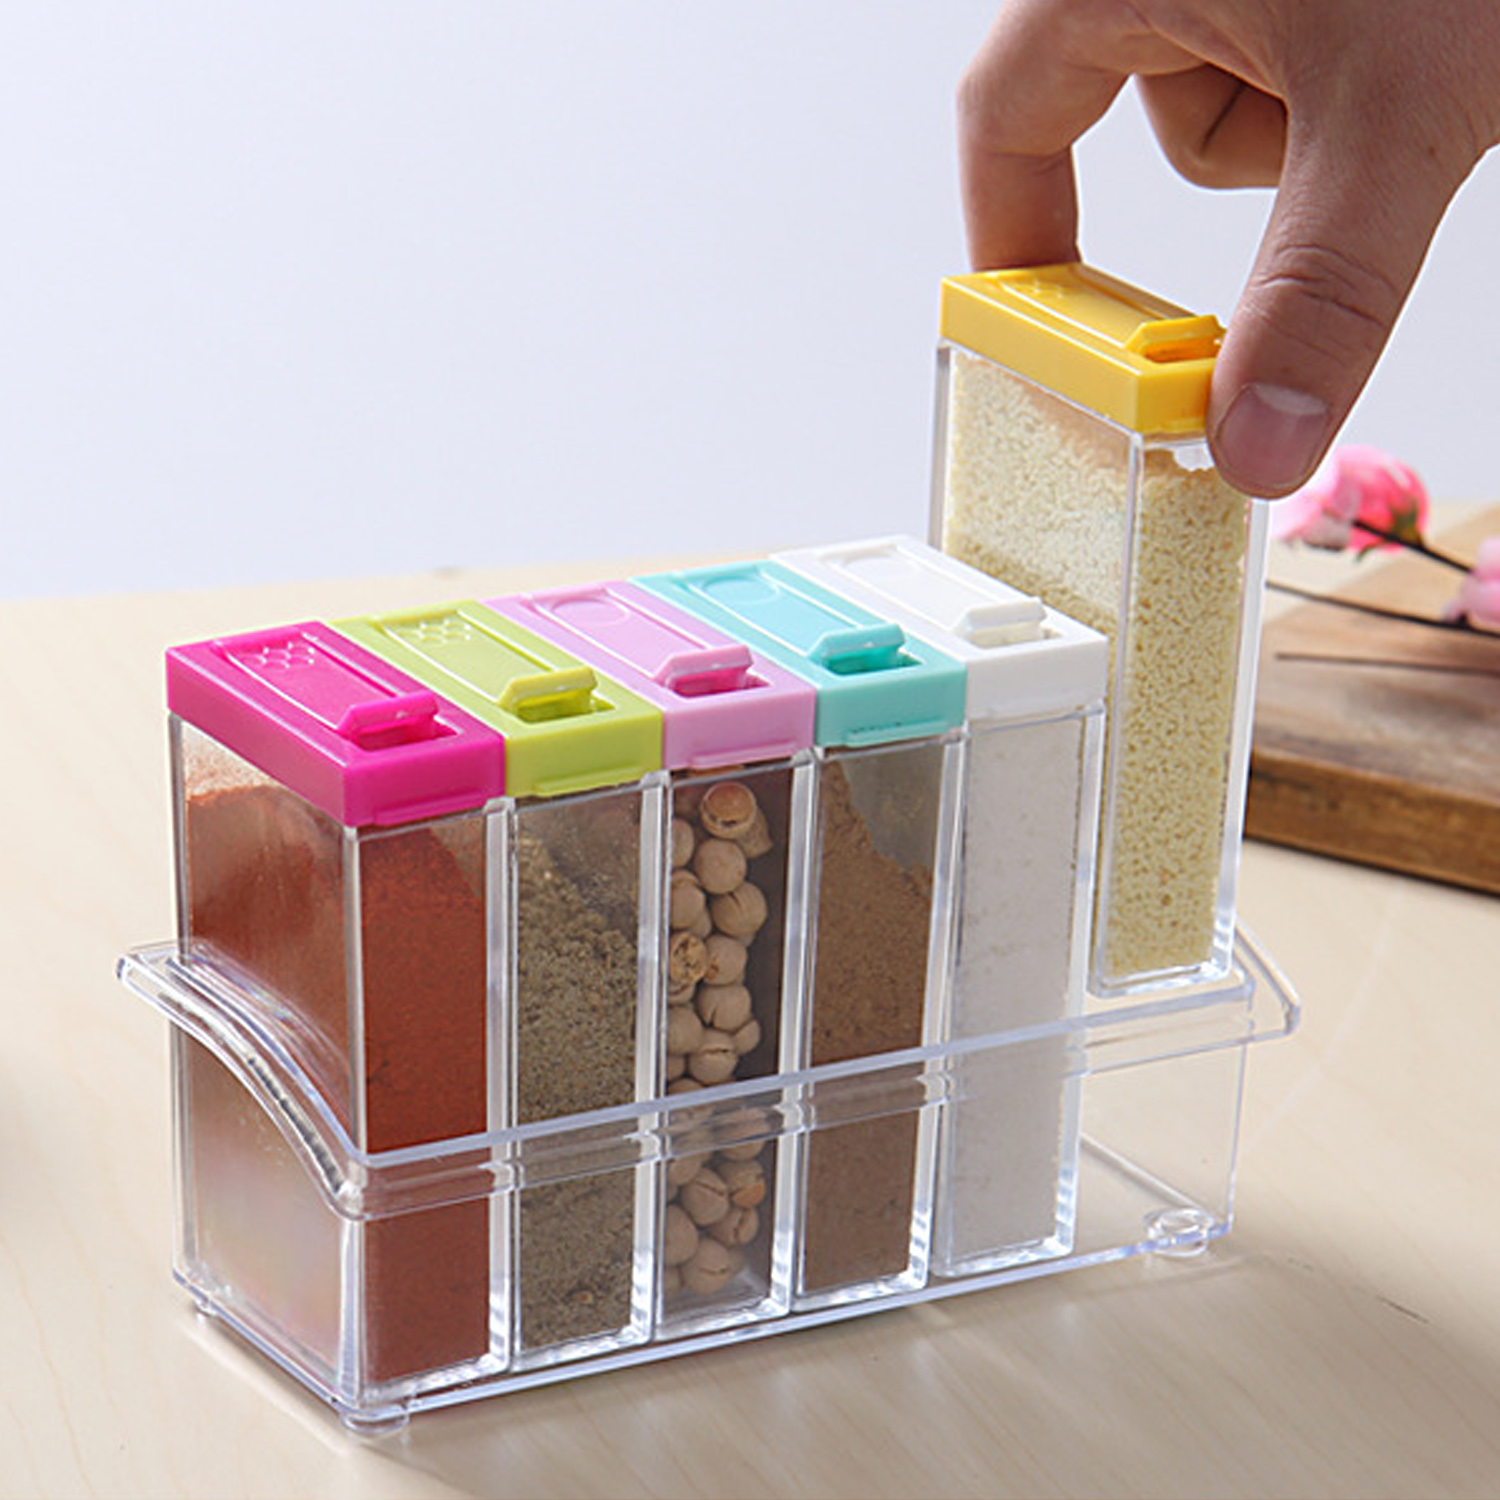 NC 6PCS Clear Shaker Shaking Tempero Seasoning Box Jar Spice Condiment Pots Storage Container Organizer Cruet